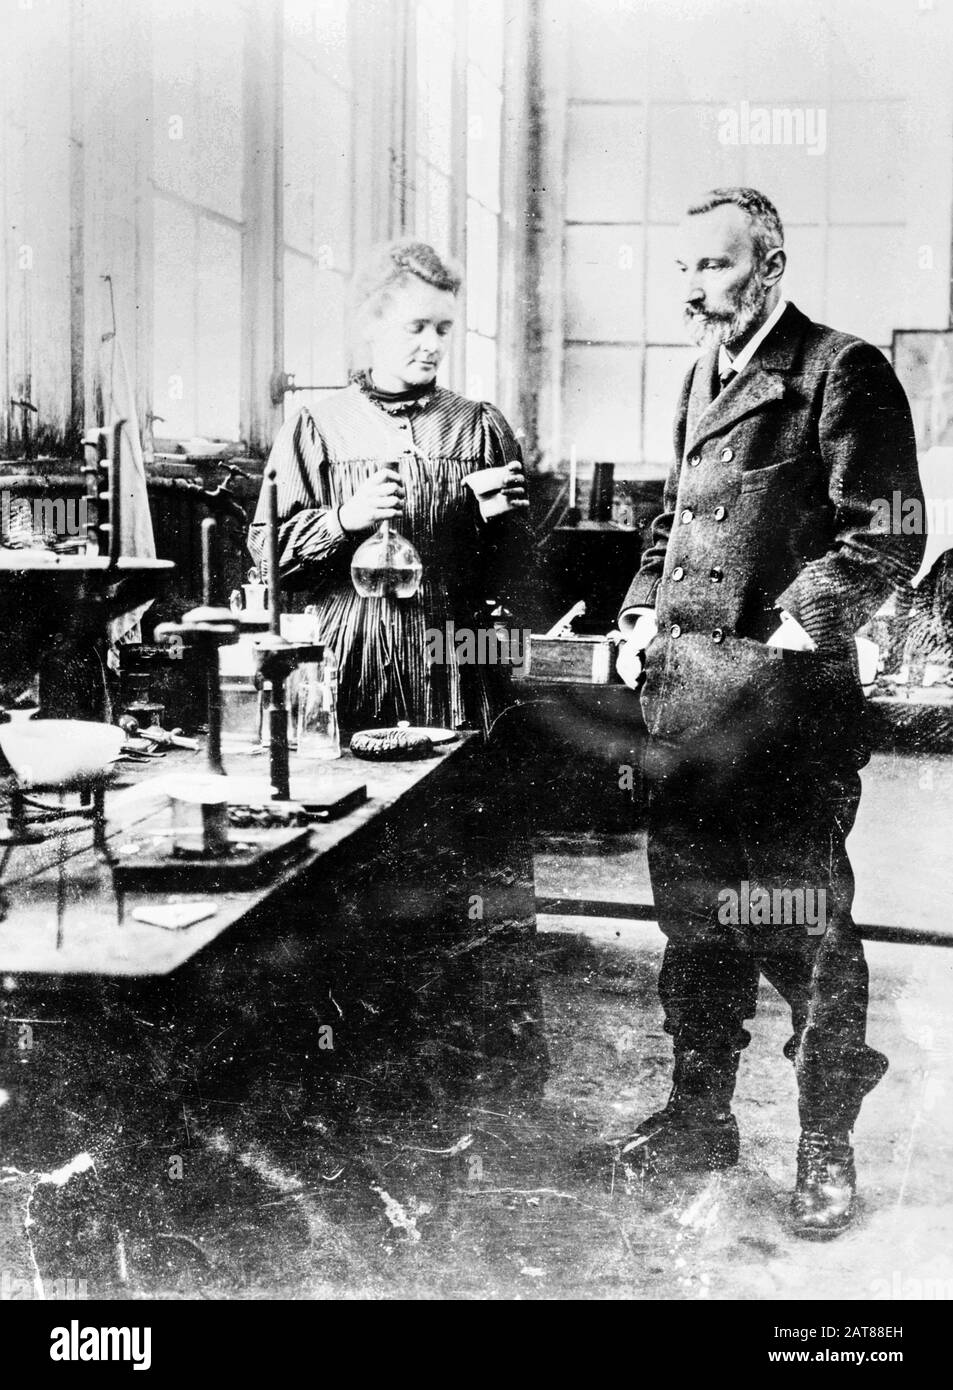 Pierre and Marie Curie in their laboratory, photograph circa 1900 Stock Photo